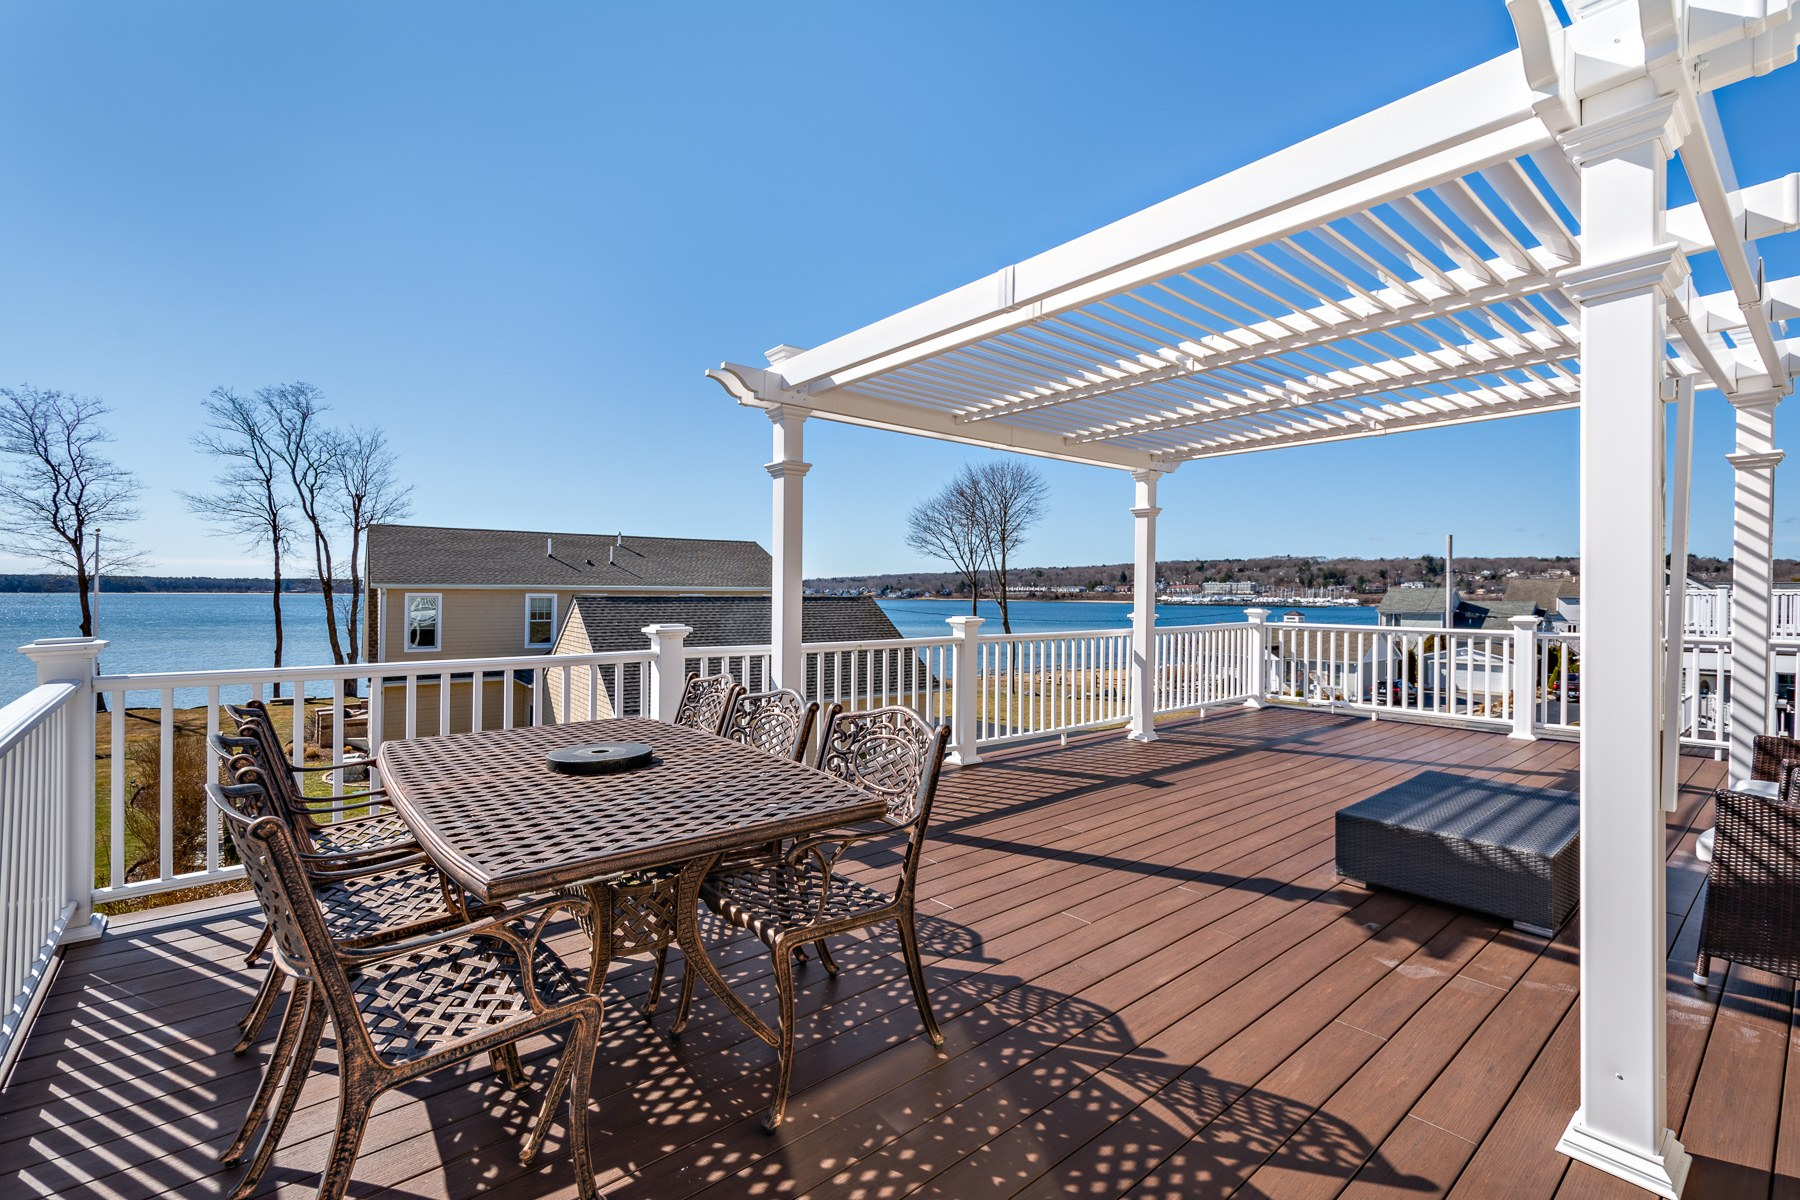 Single Family Homes for Sale at 8 Melbourn Road, Warwick, RI 8 Melbourn Road Warwick, Rhode Island 02886 United States